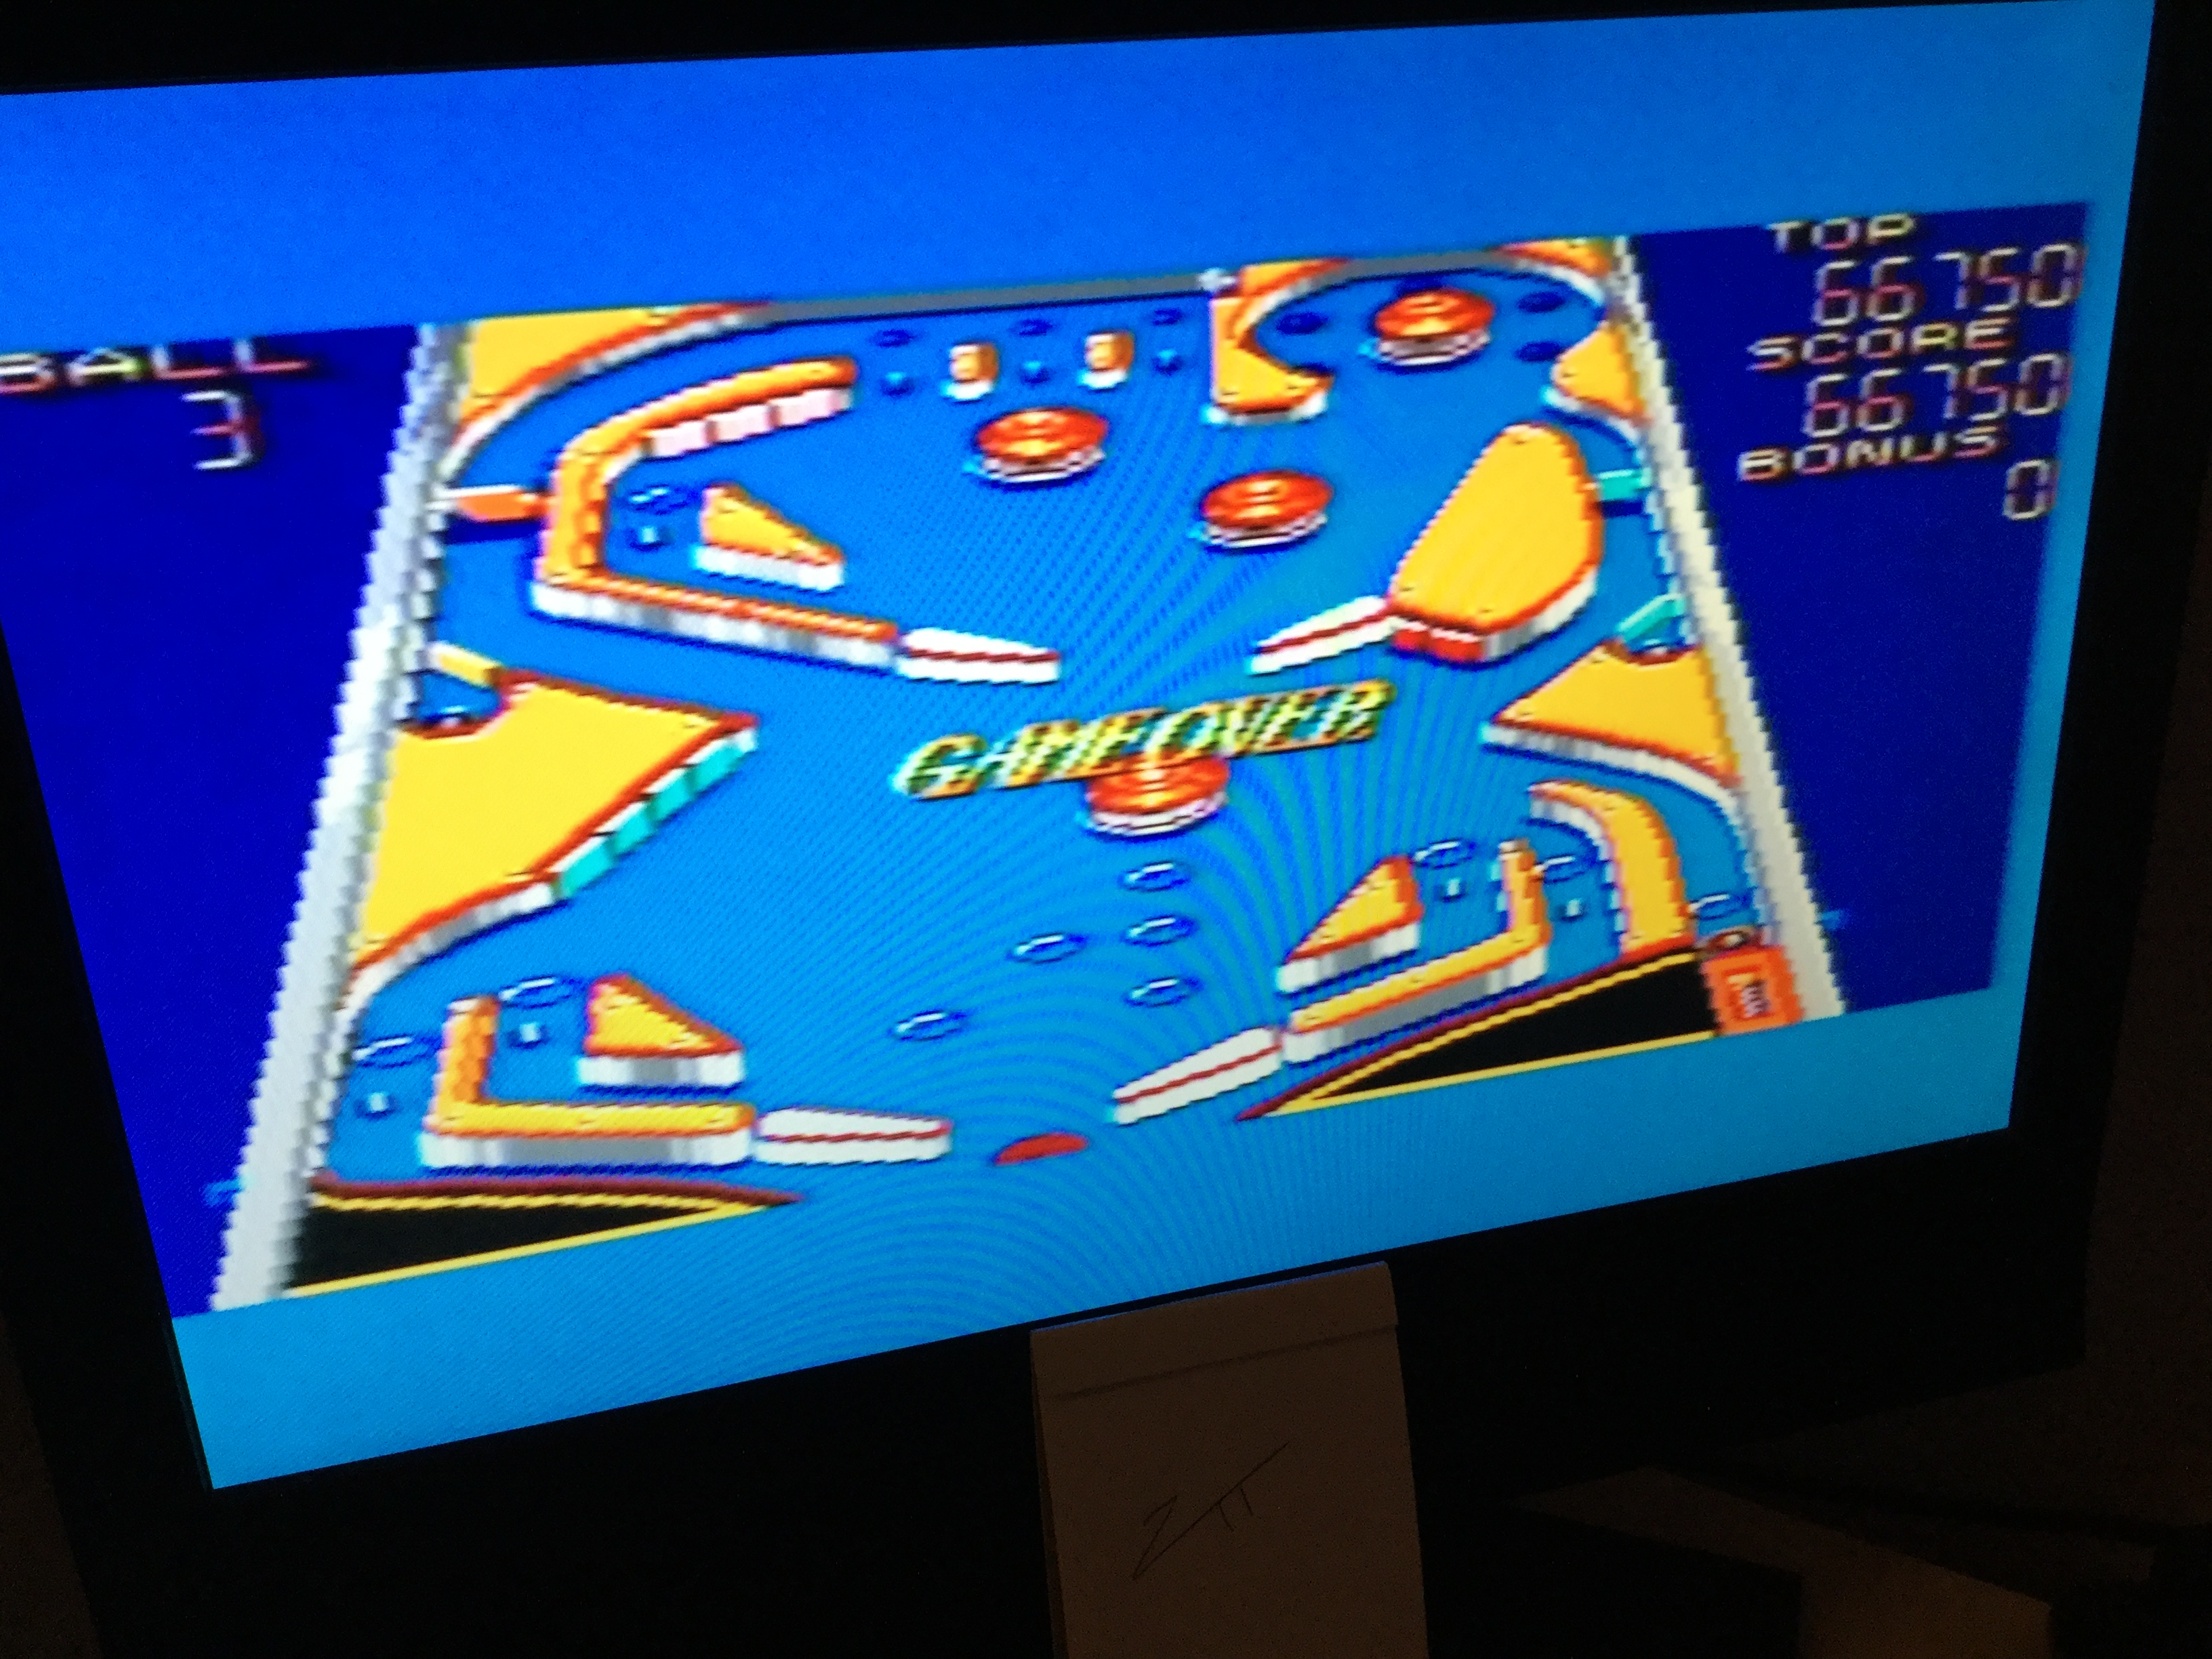 Frankie: Casino Games: Pinball [Steep] (Sega Master System) 66,750 points on 2020-11-27 06:42:01